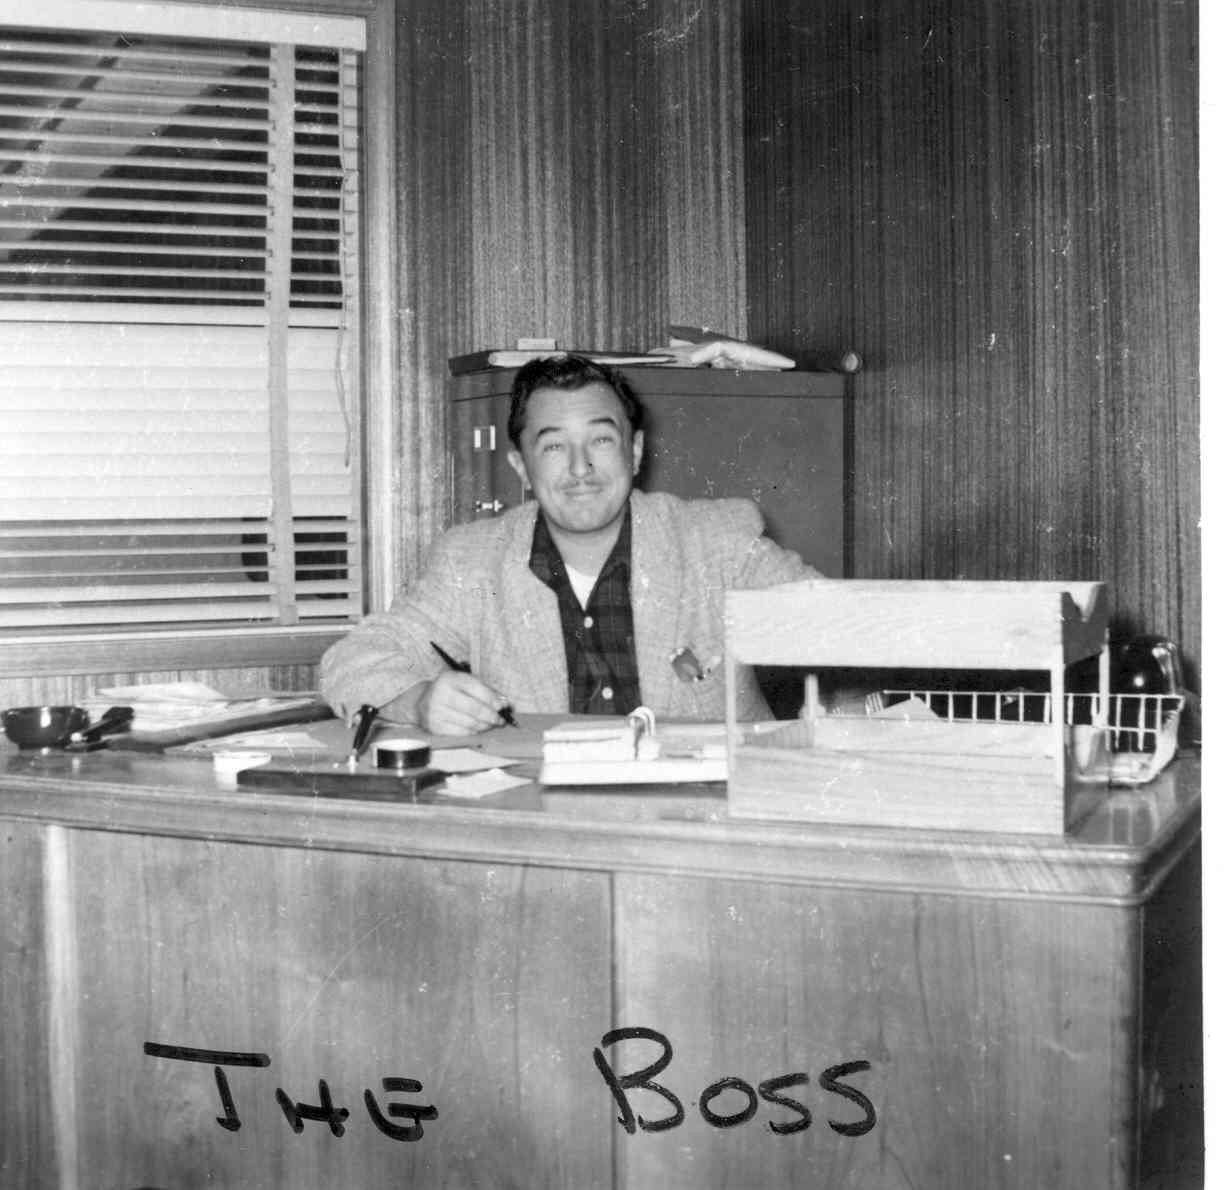 THE BOSS: Clay's grandfather, Albert Shackleton Jr., at his desk. He died in 2016 at the age of 88.